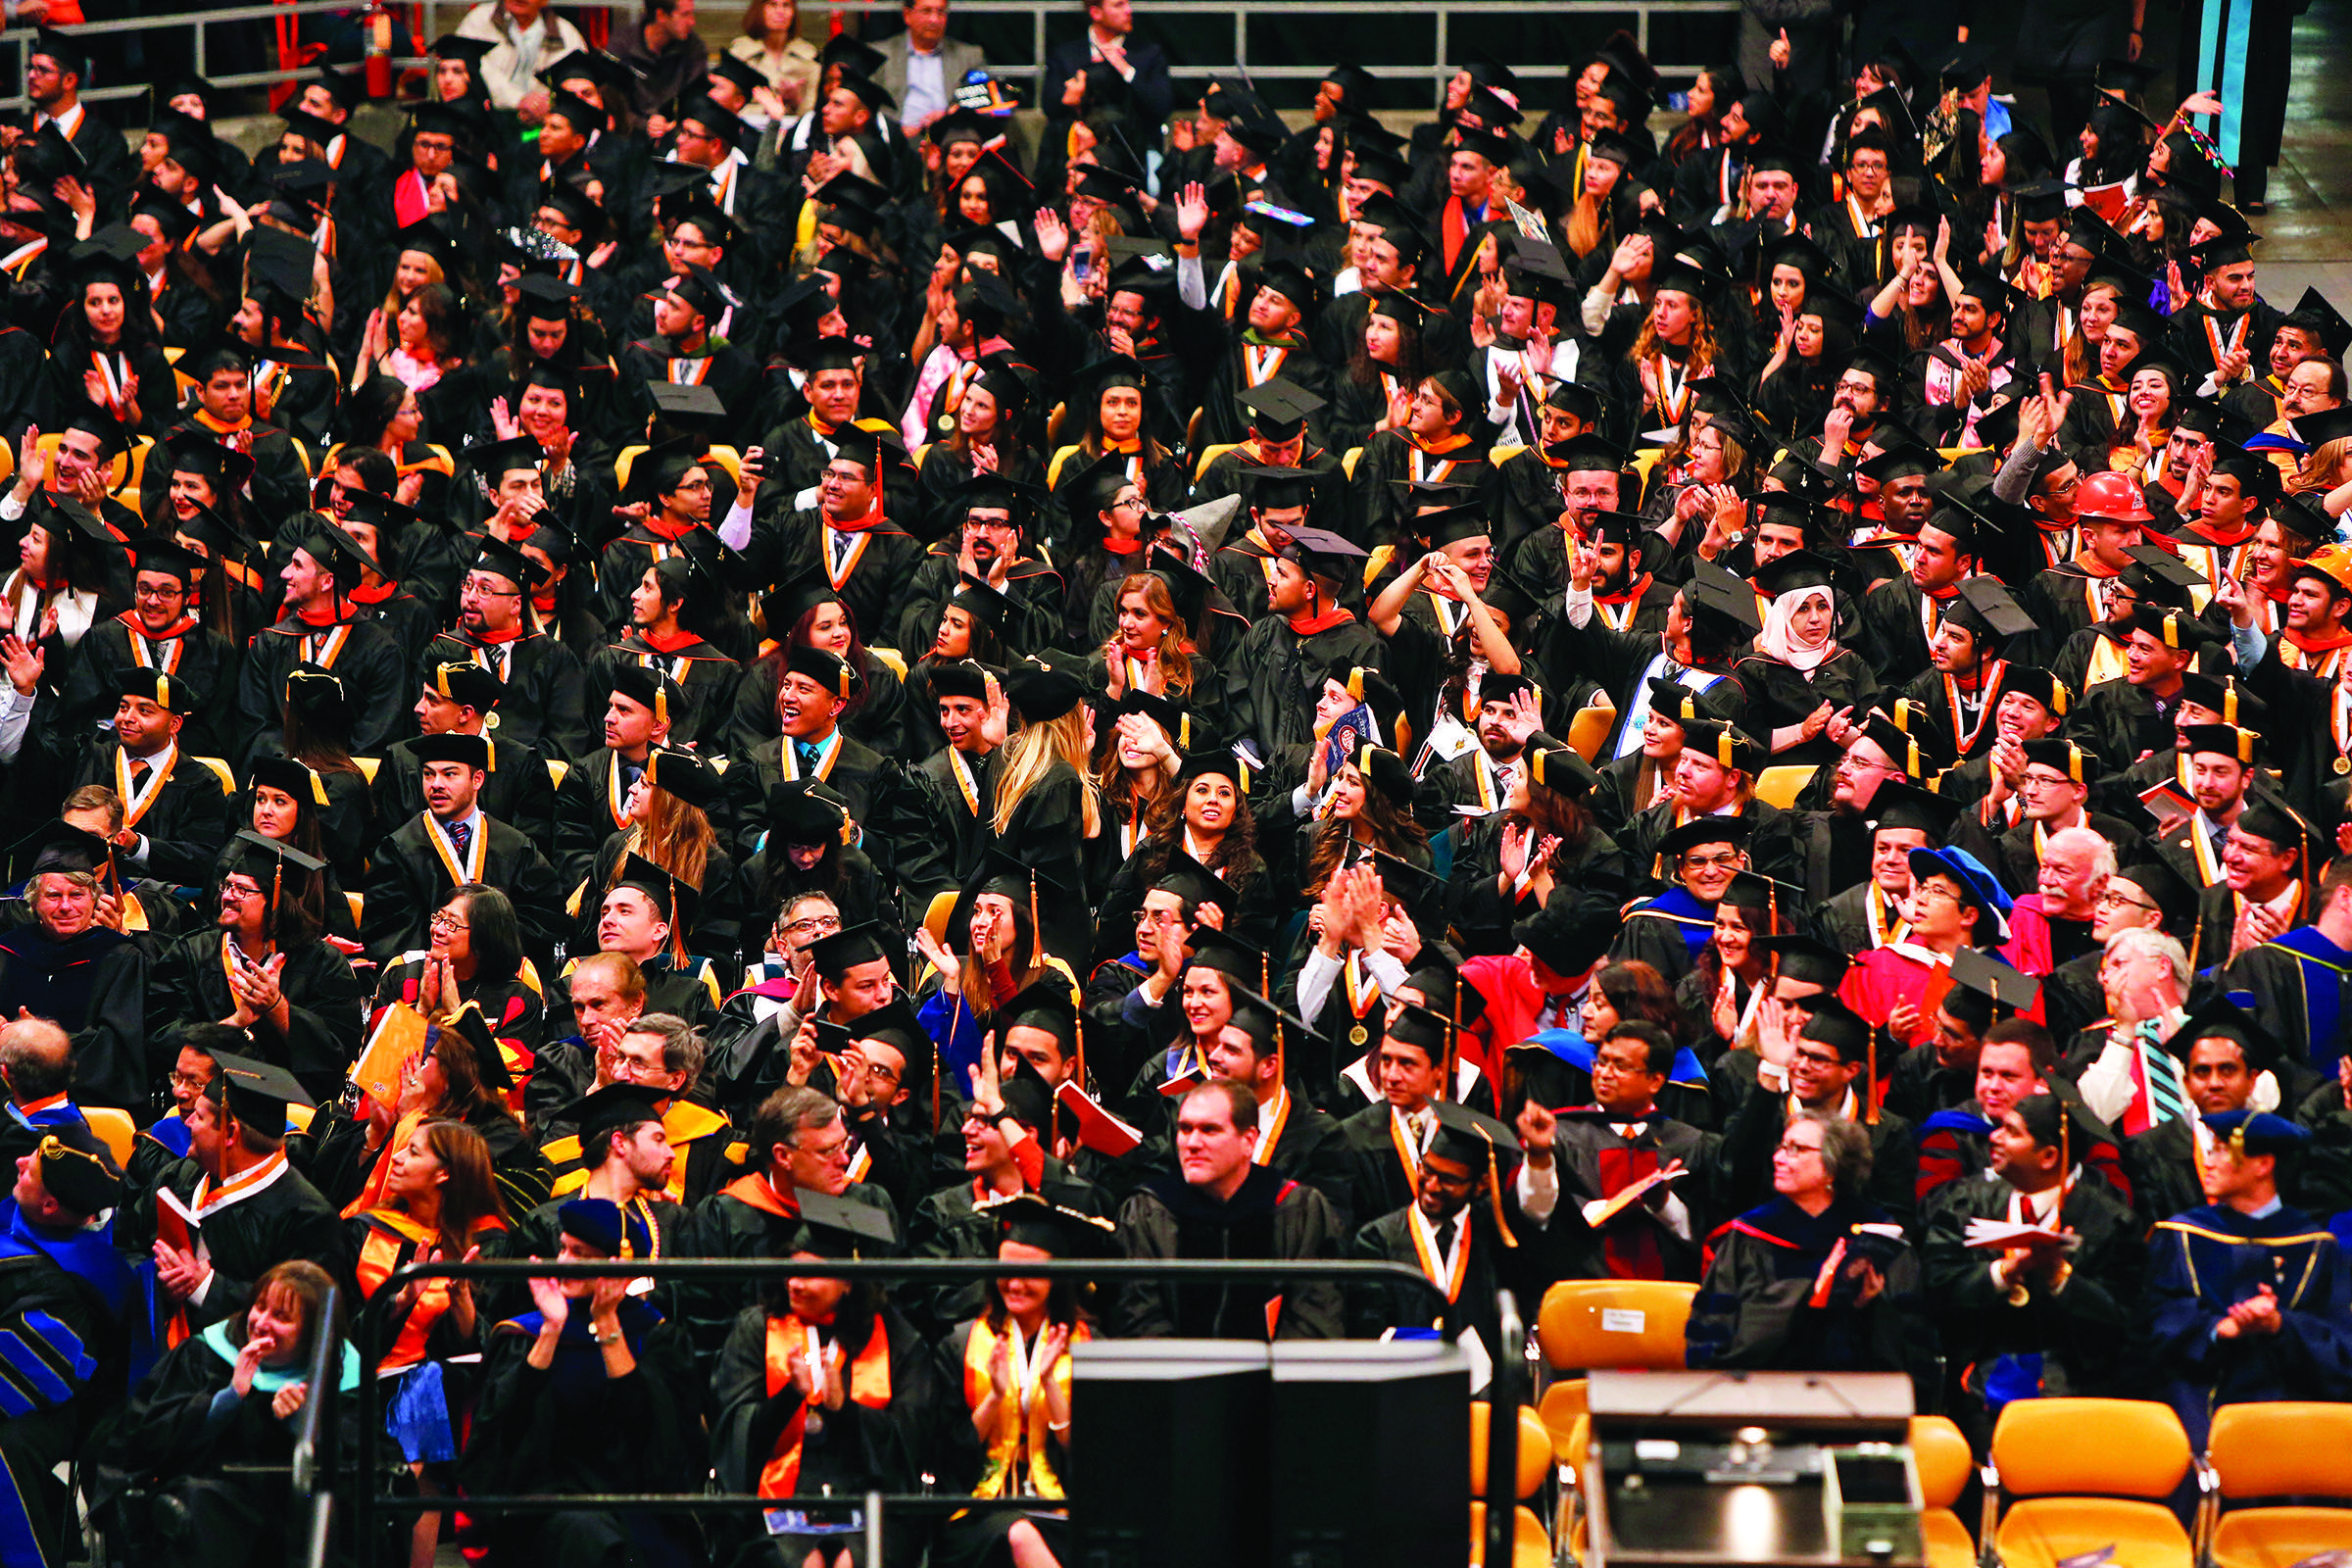 commencement 4 march 2017.jpg